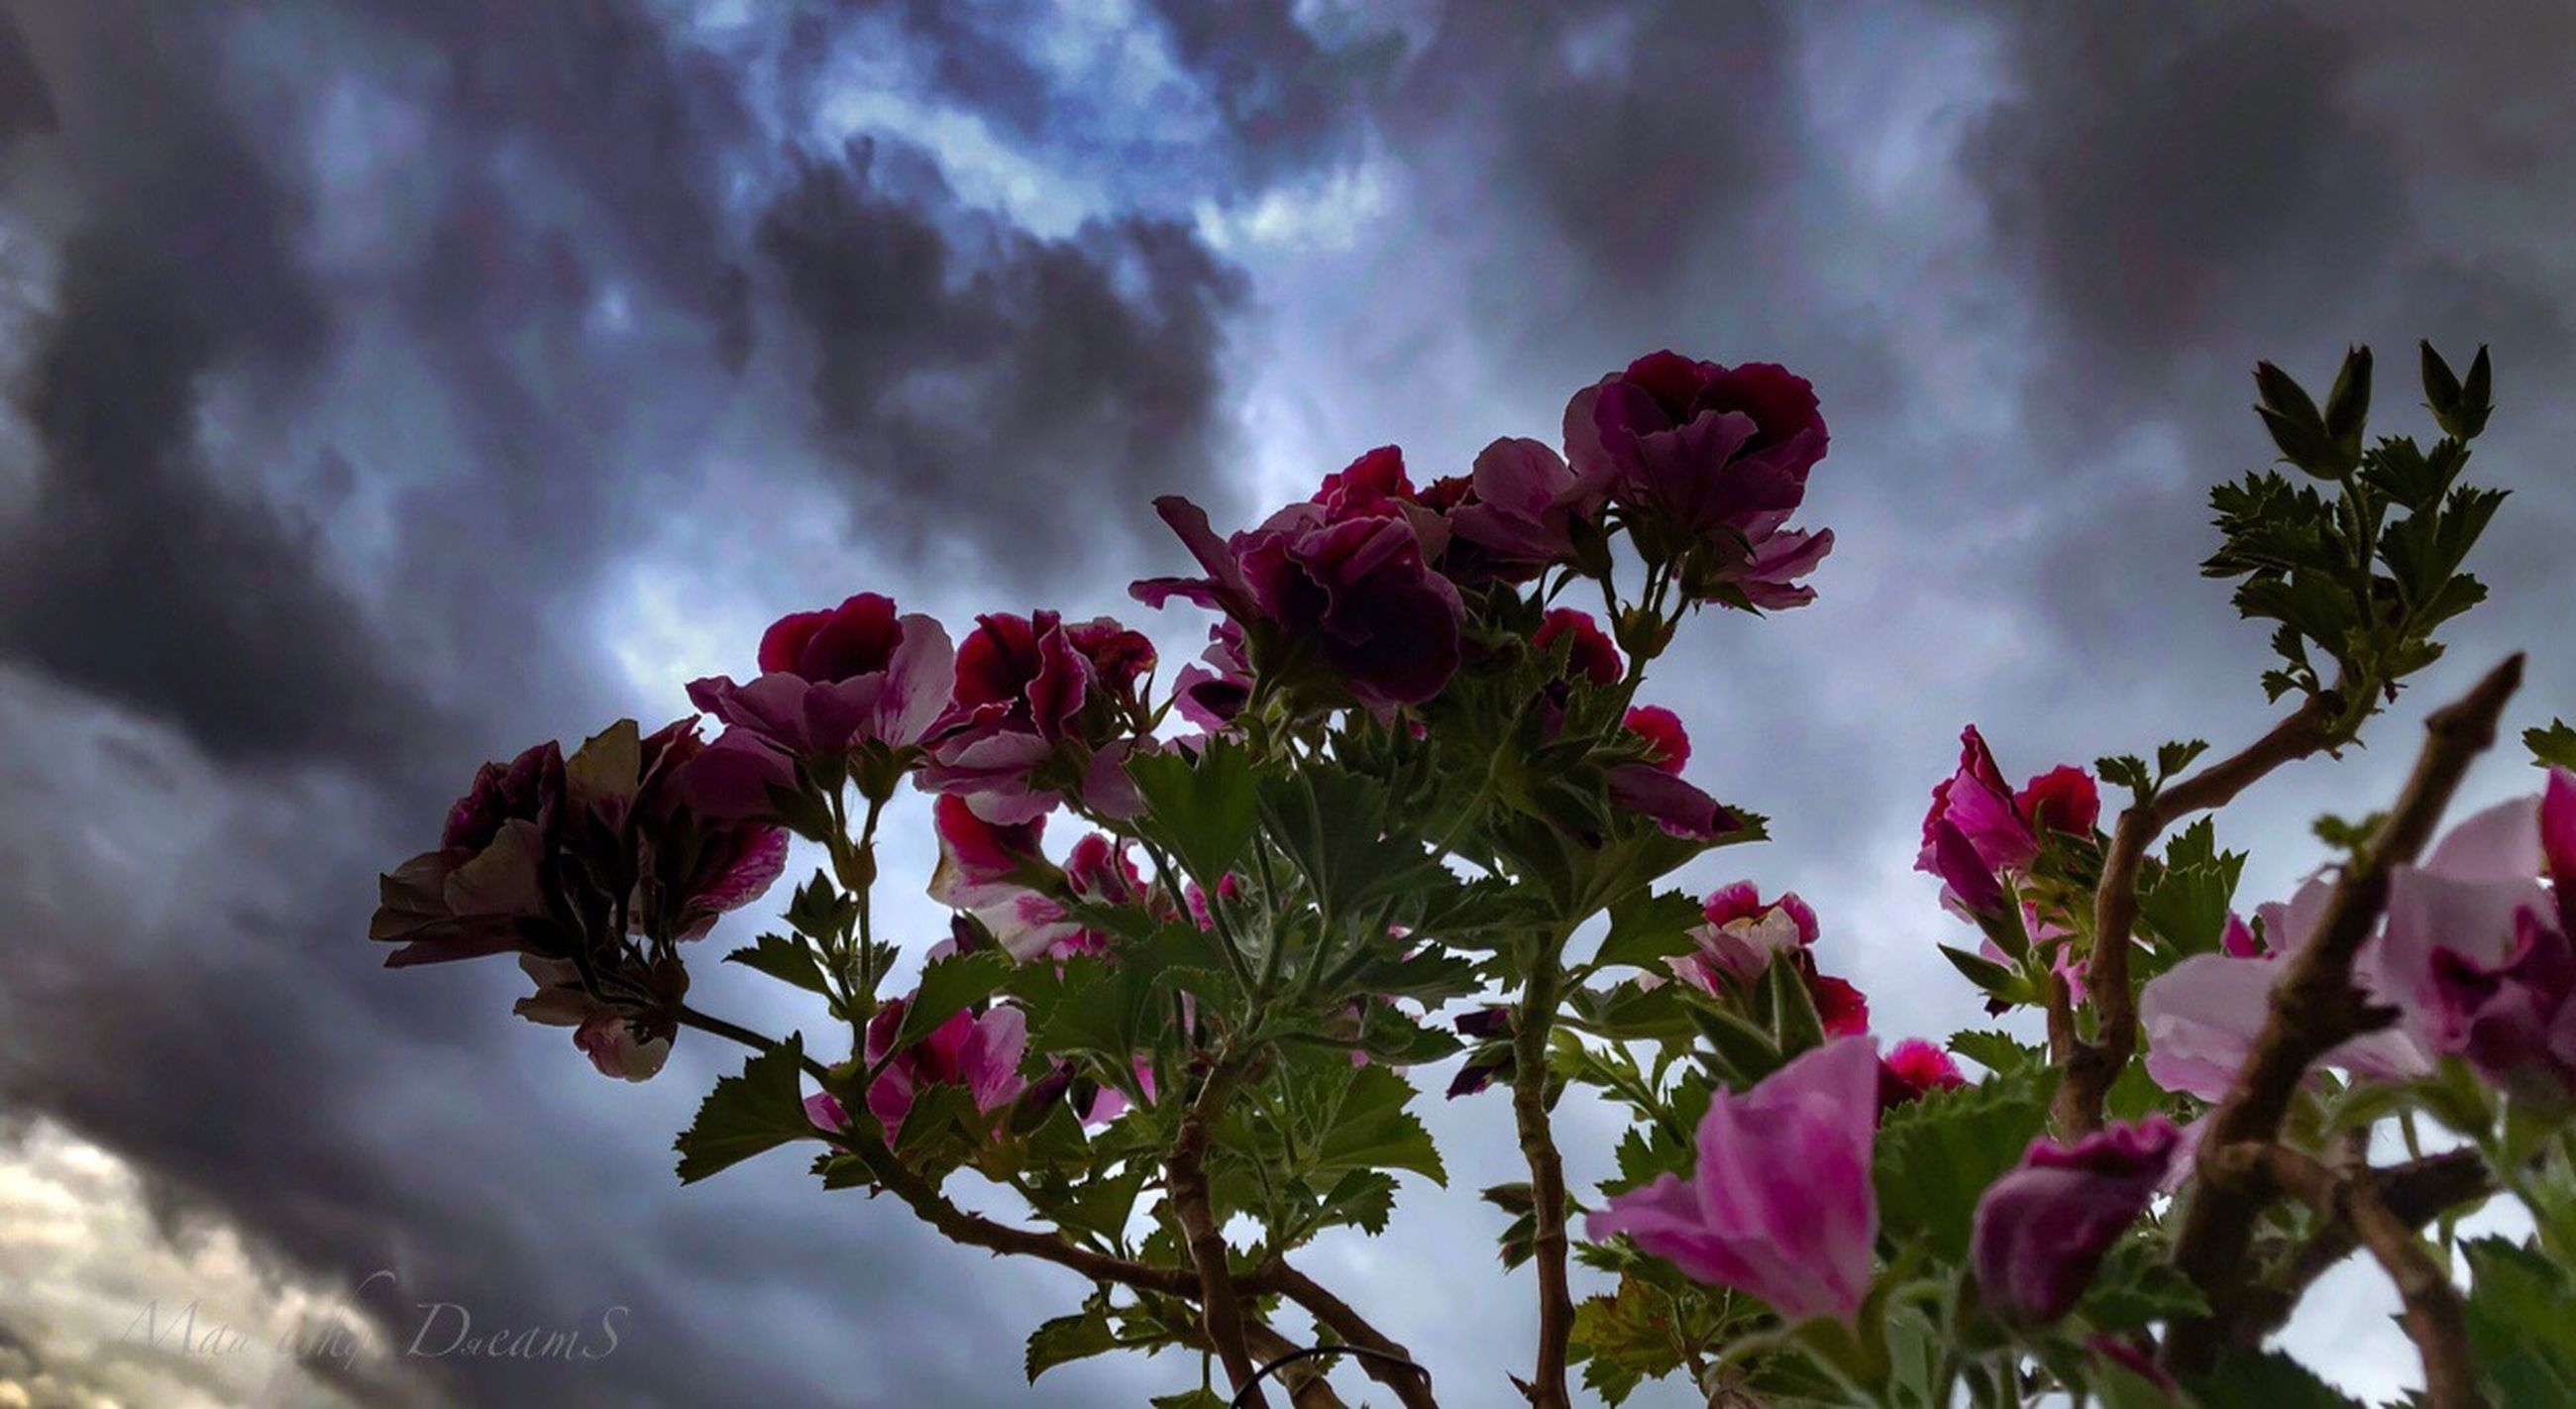 flower, flowering plant, plant, beauty in nature, growth, fragility, cloud - sky, sky, freshness, vulnerability, pink color, nature, petal, close-up, no people, low angle view, day, tree, flower head, outdoors